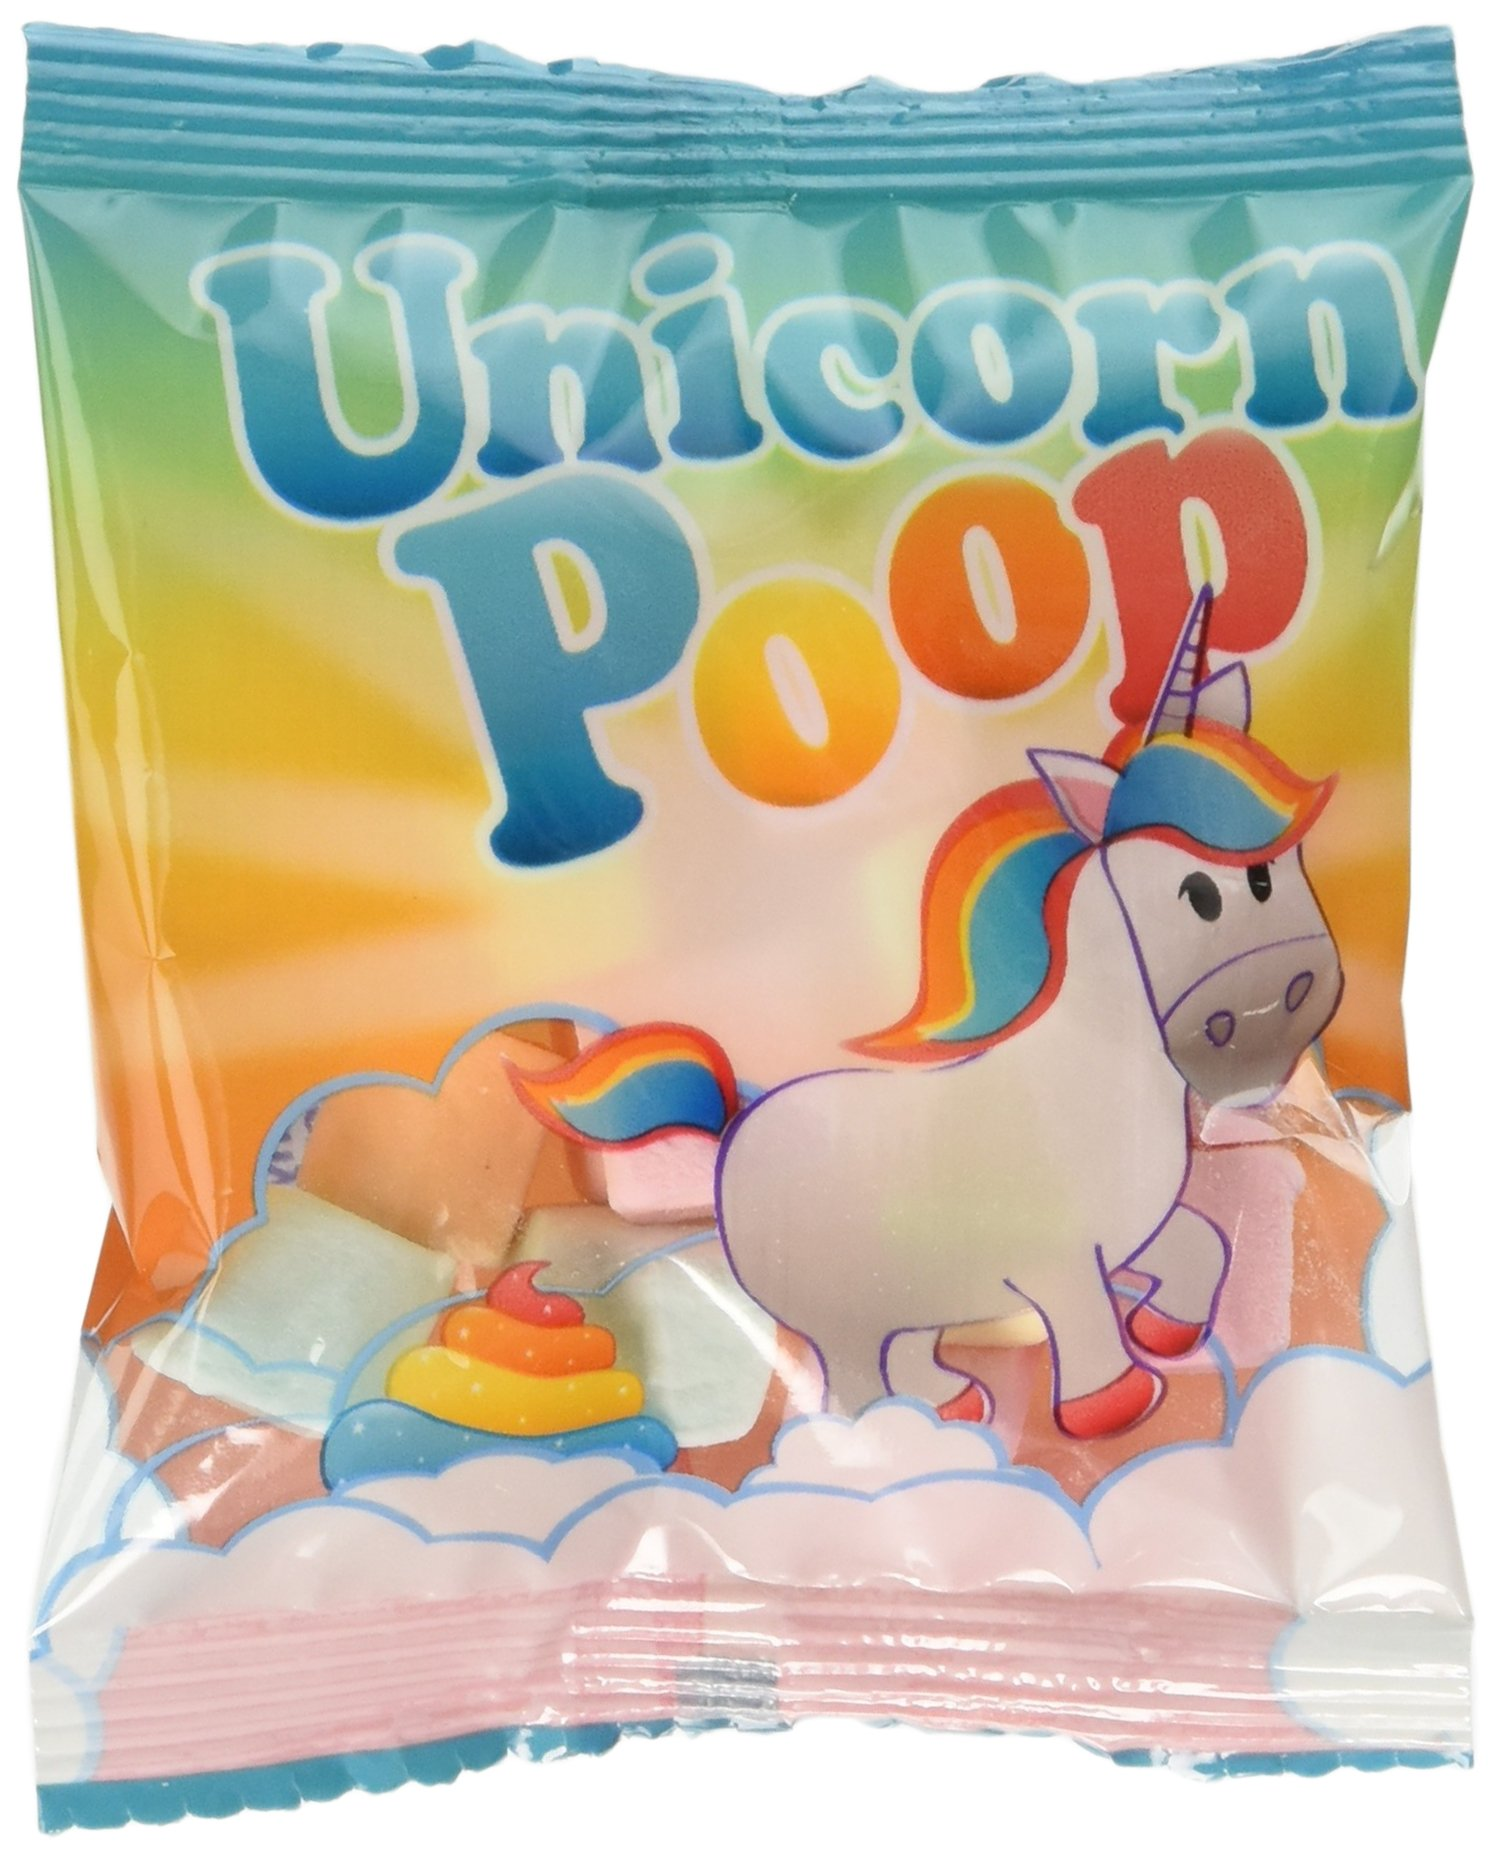 Unicorn Poop Marshmallow Candy Fun Packs - 57 Packs